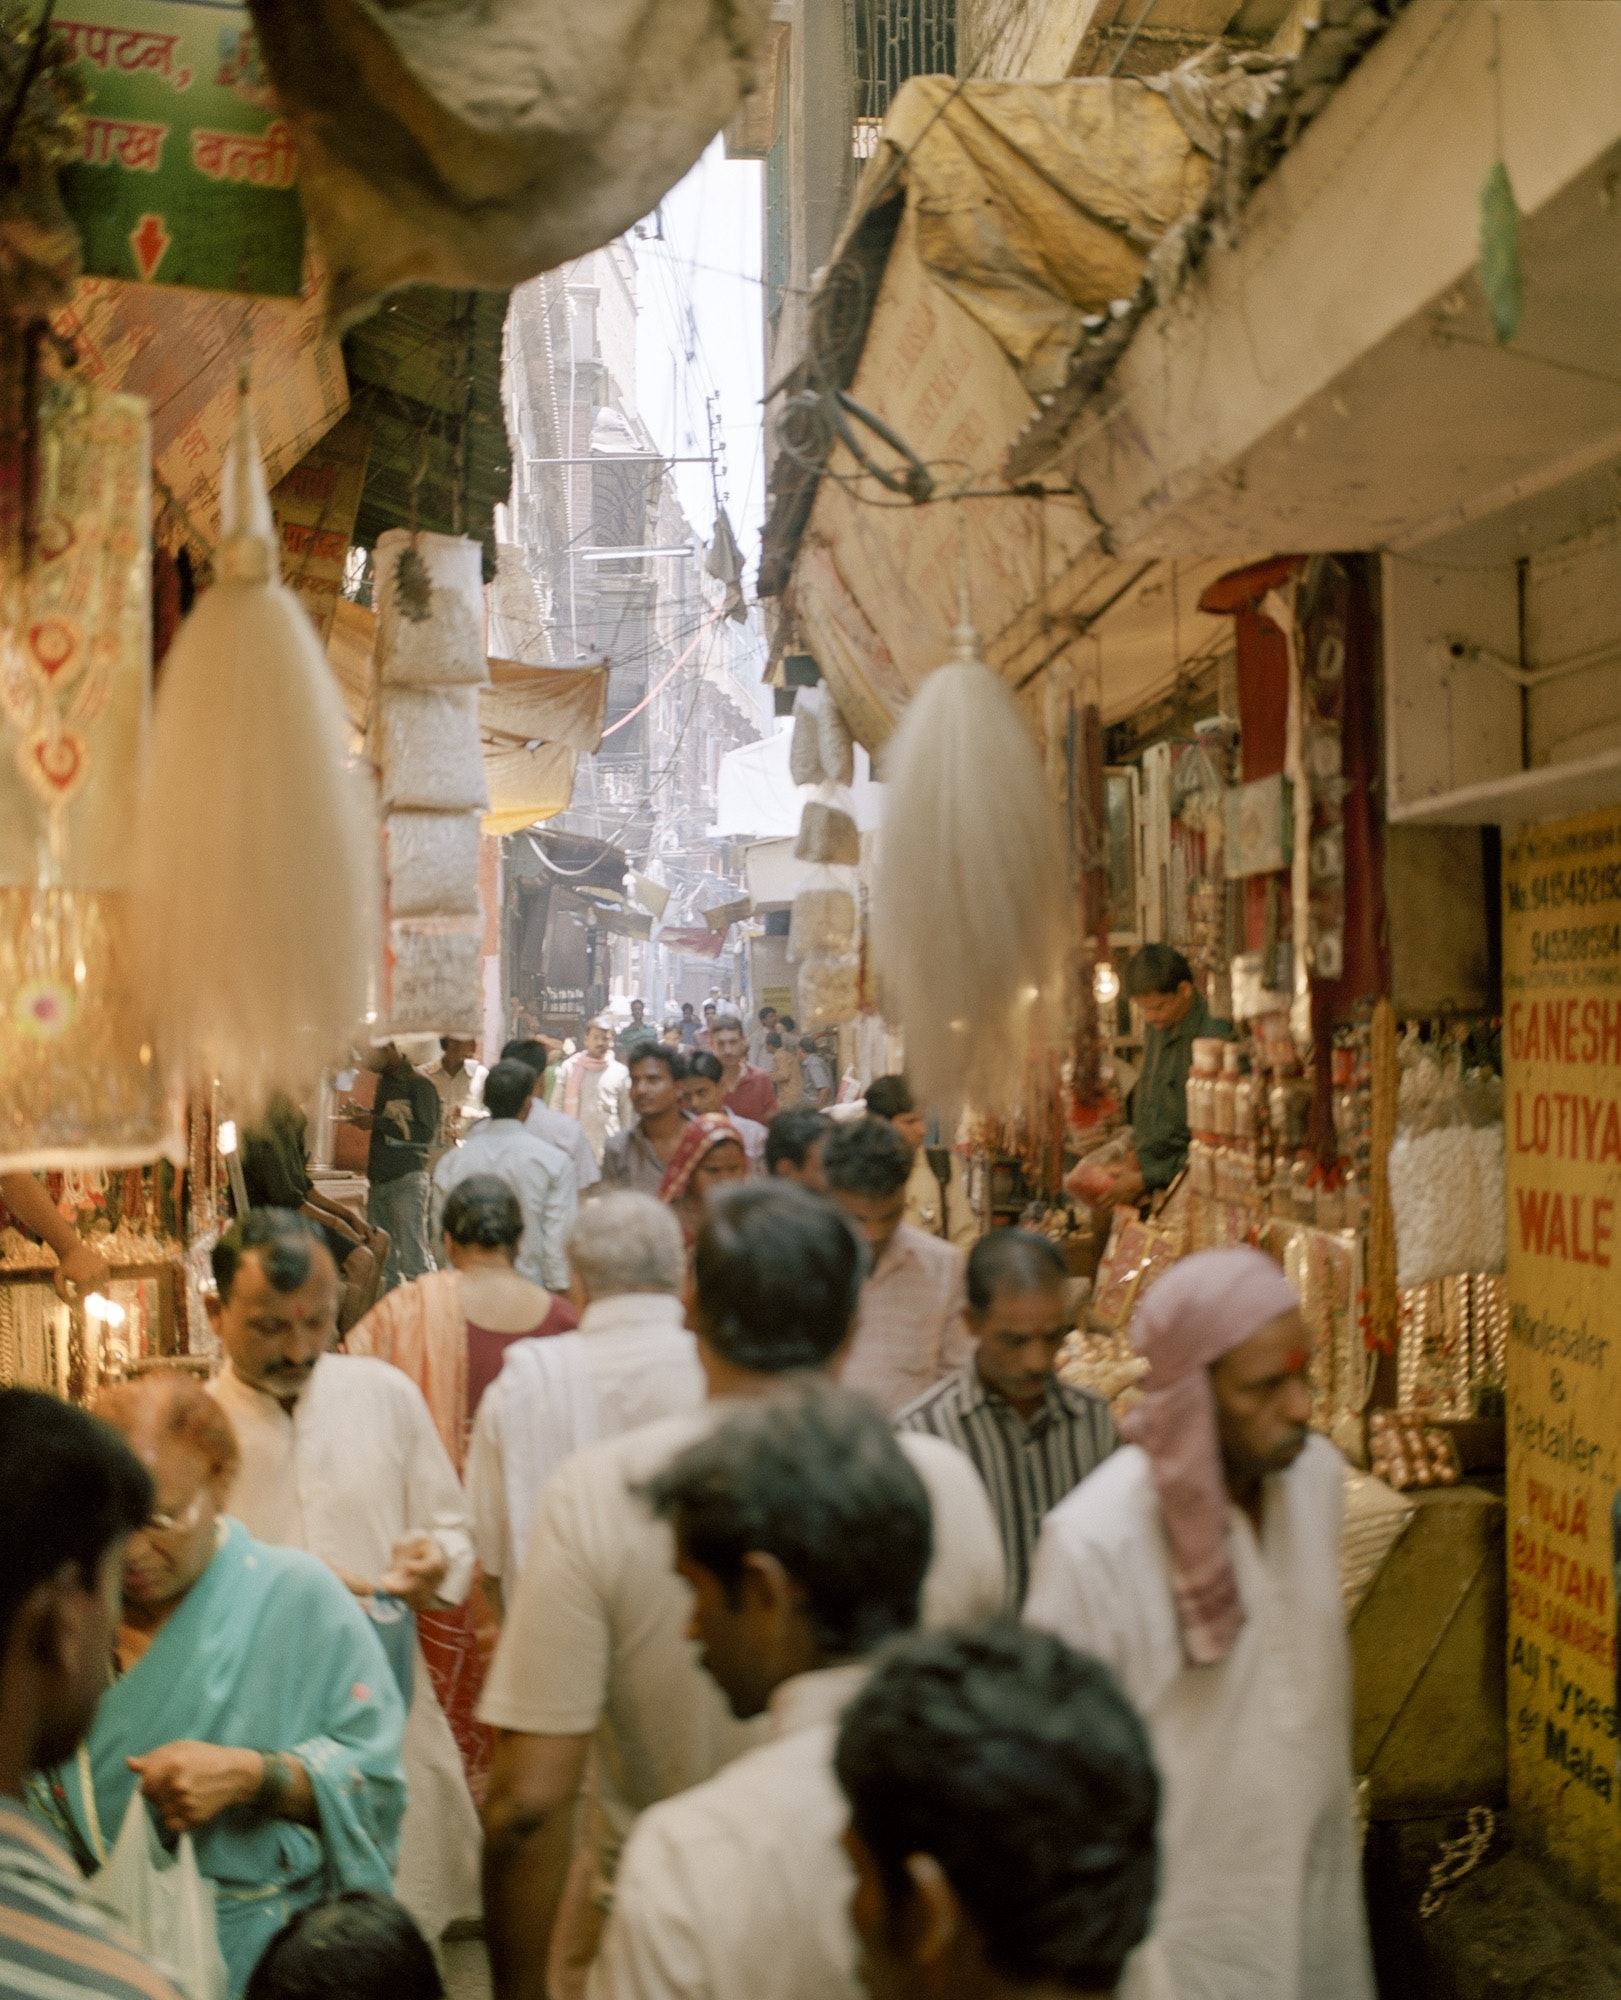 Thatheri Bazaar, one of Varanasi's main shopping areas, is best known for brassware, silk goods, and saris.